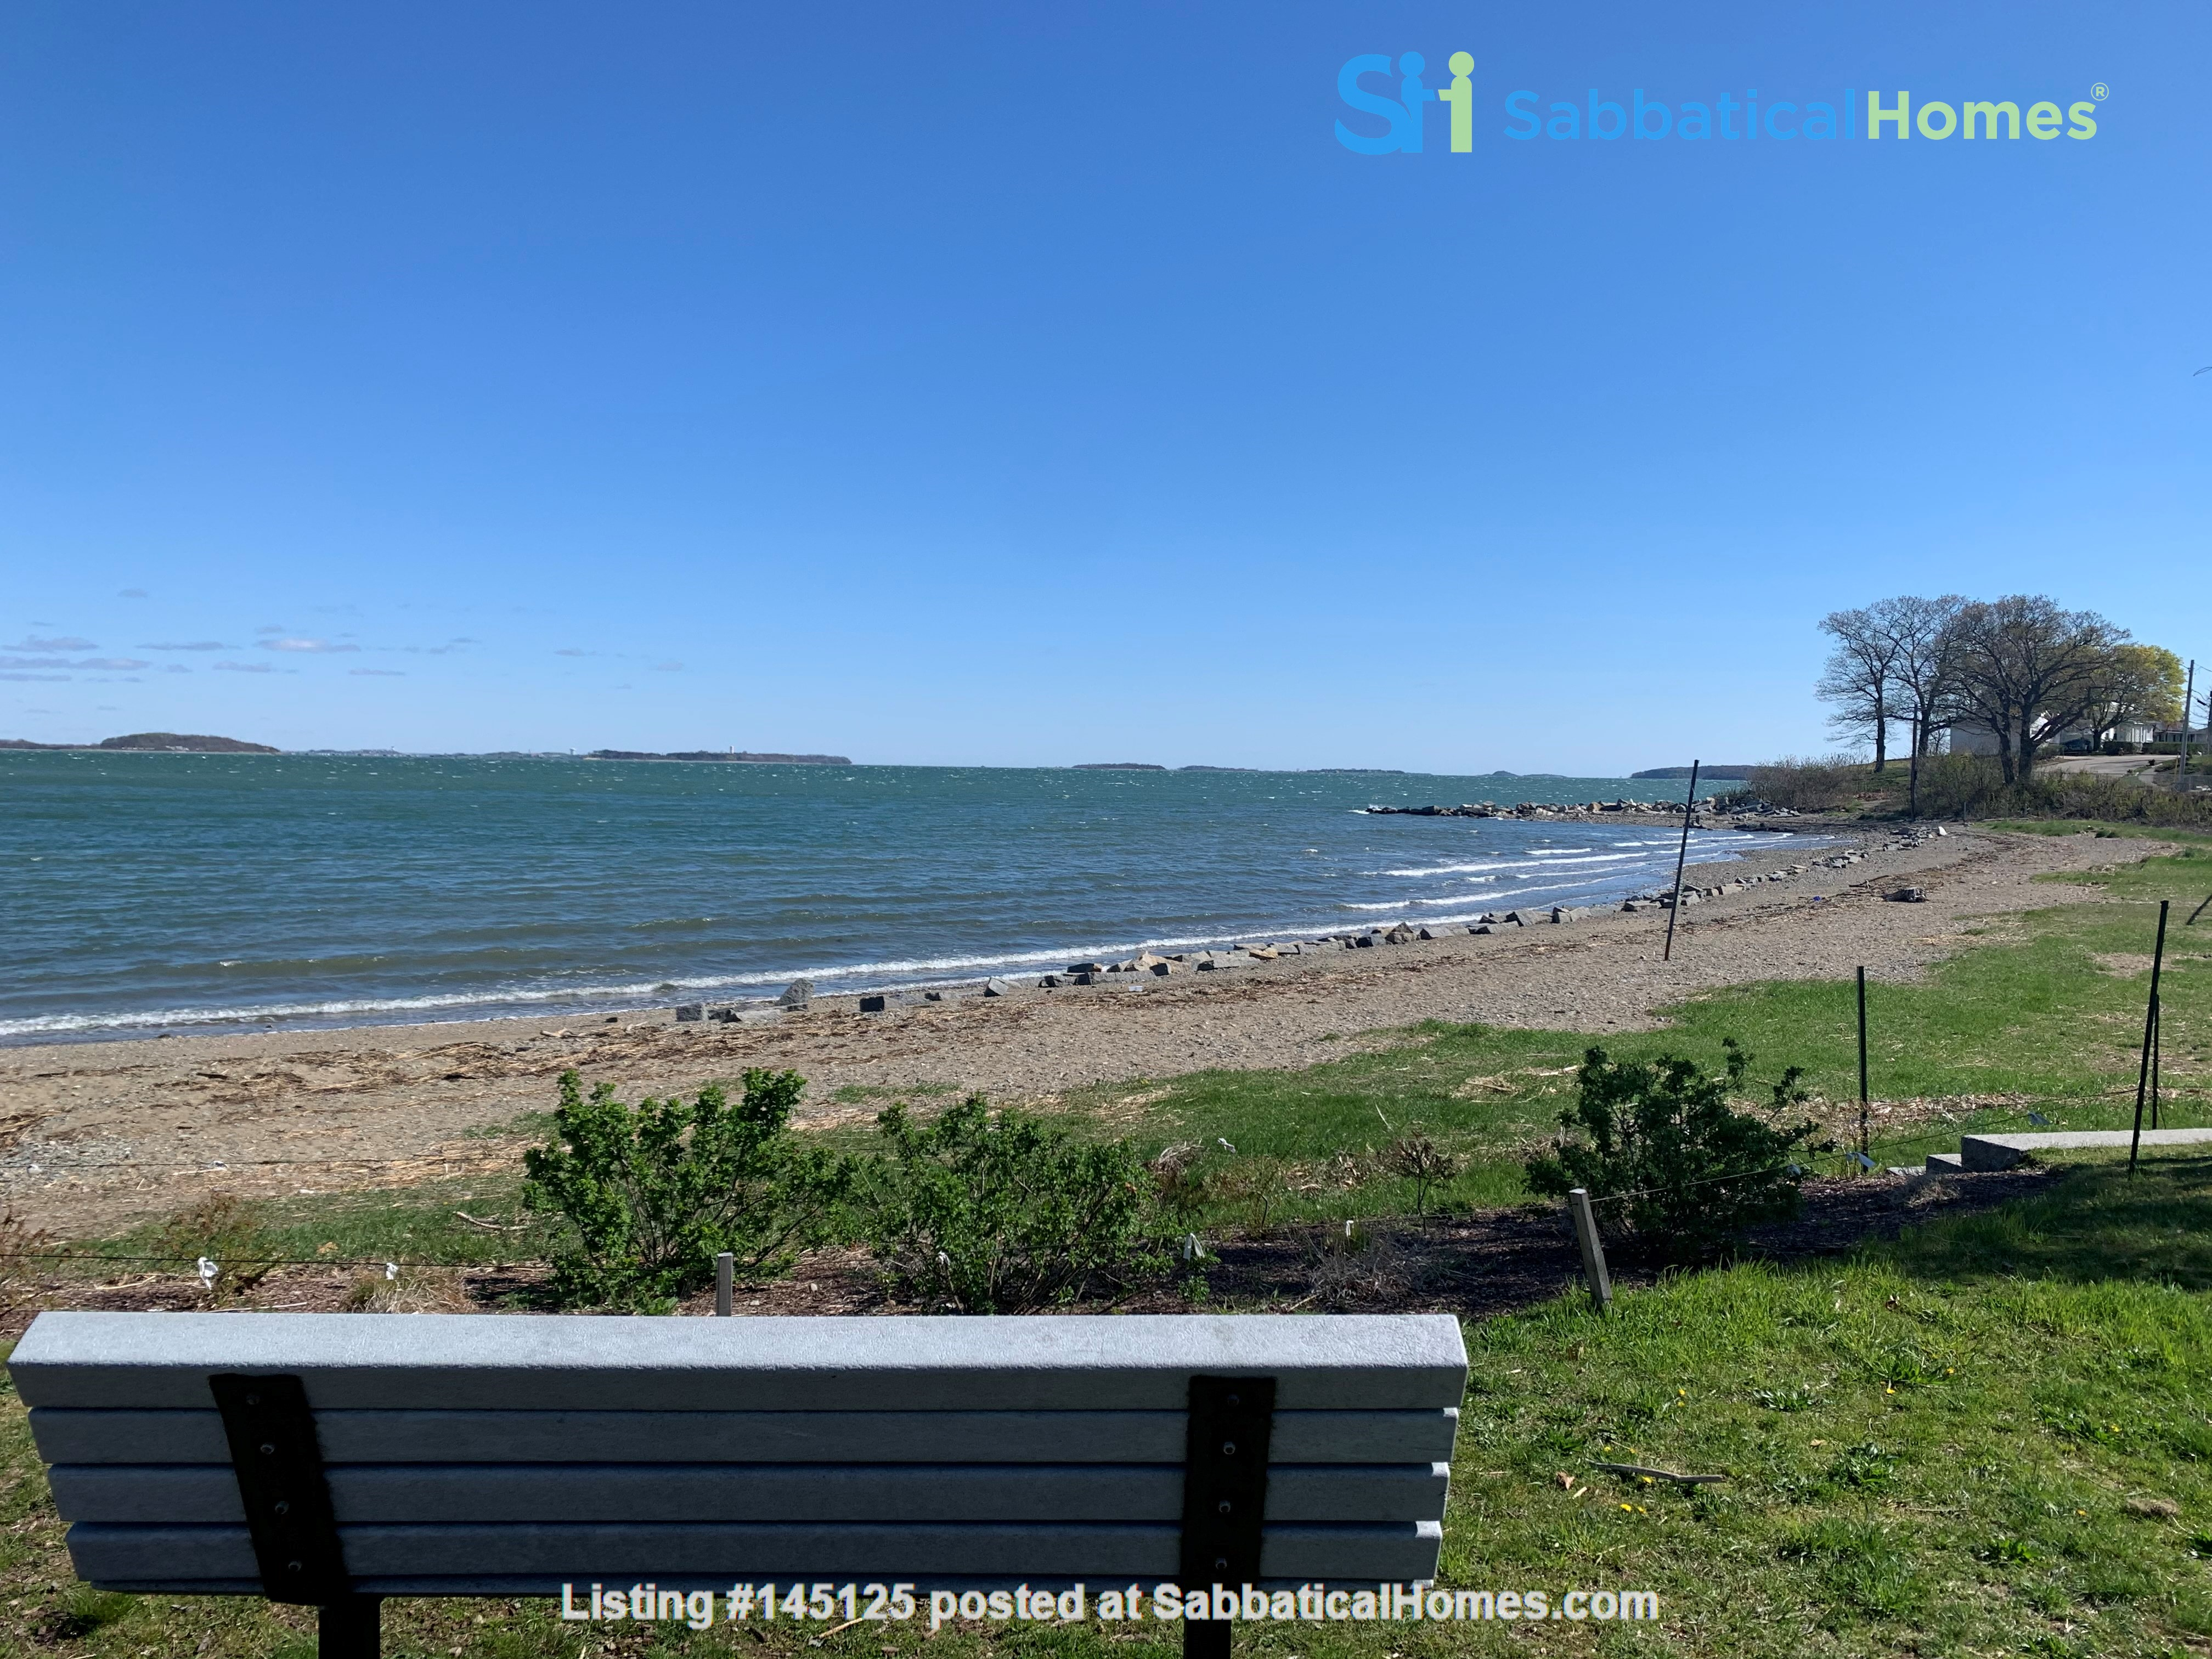 4 Bedroom by the Beach Home Rental in Quincy, Massachusetts, United States 0